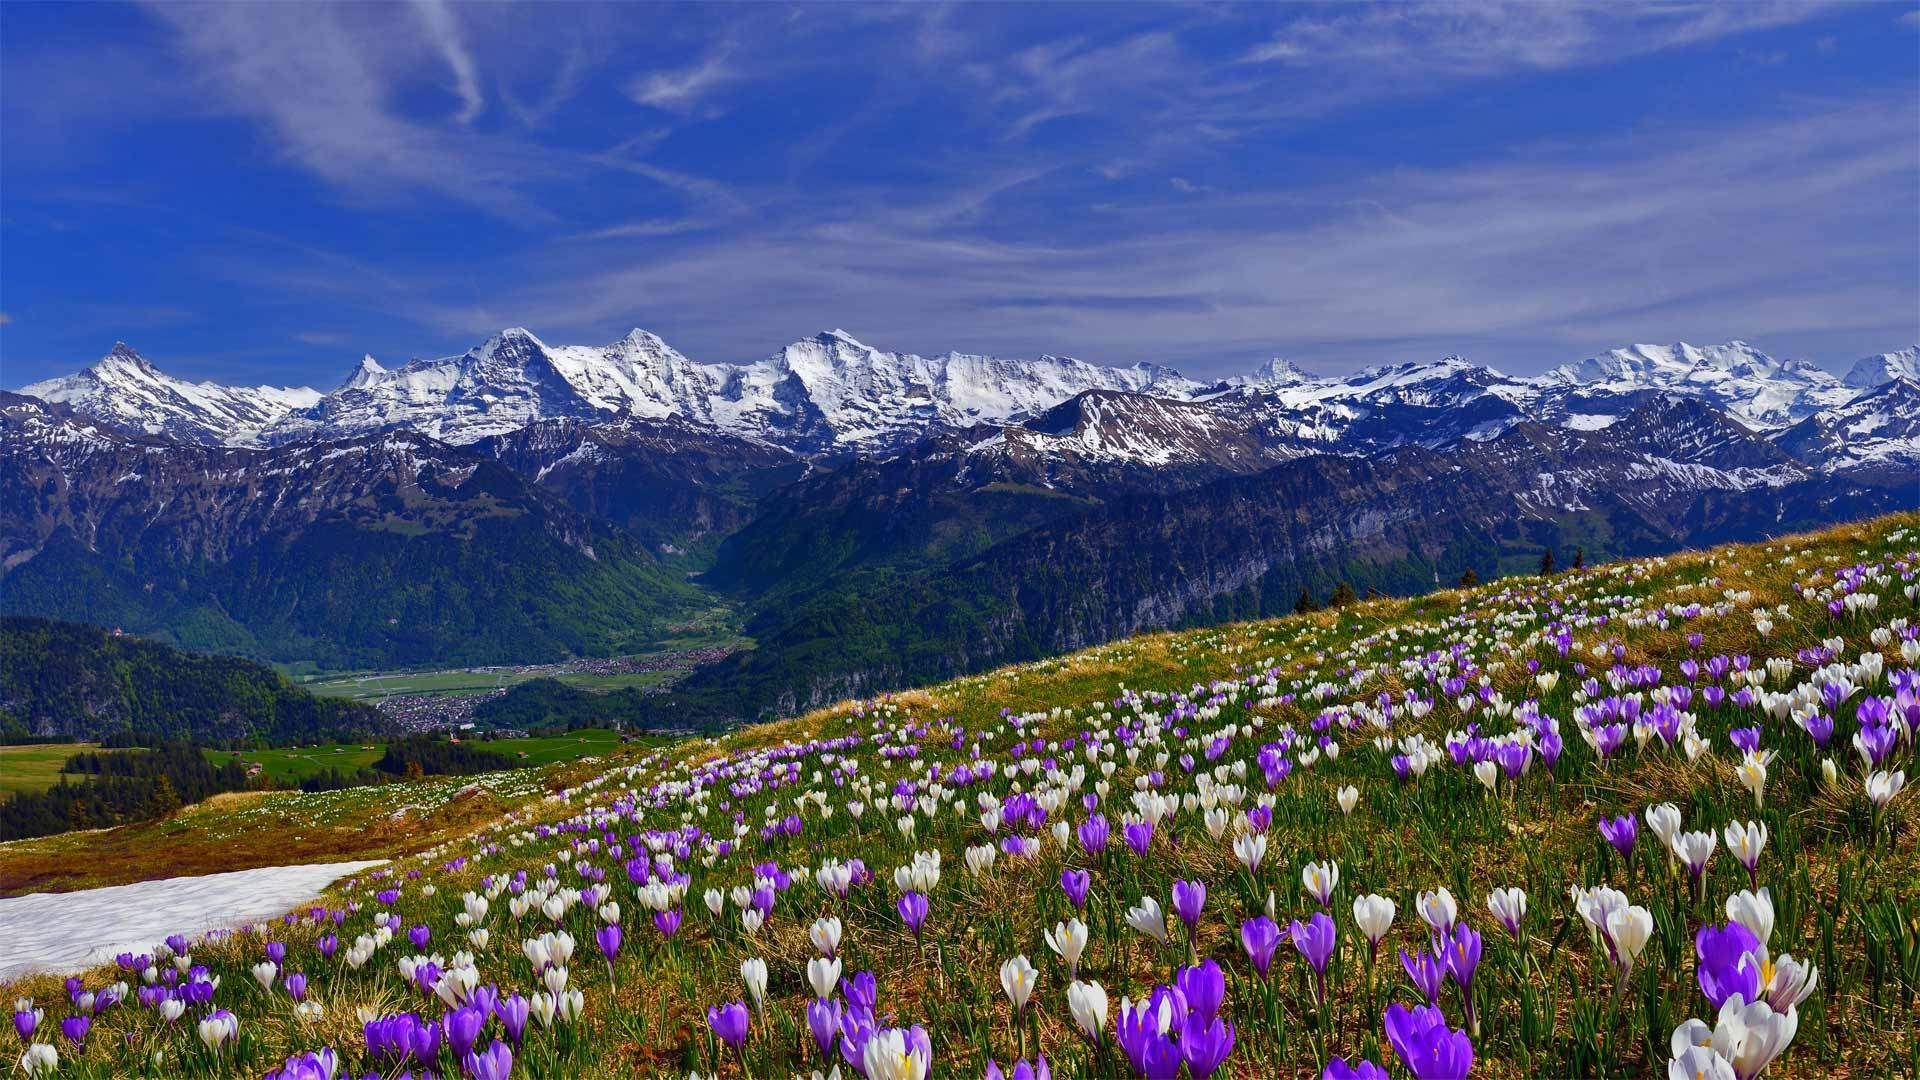 Spring Mountain Landscape Wallpaper for desktop & mobile